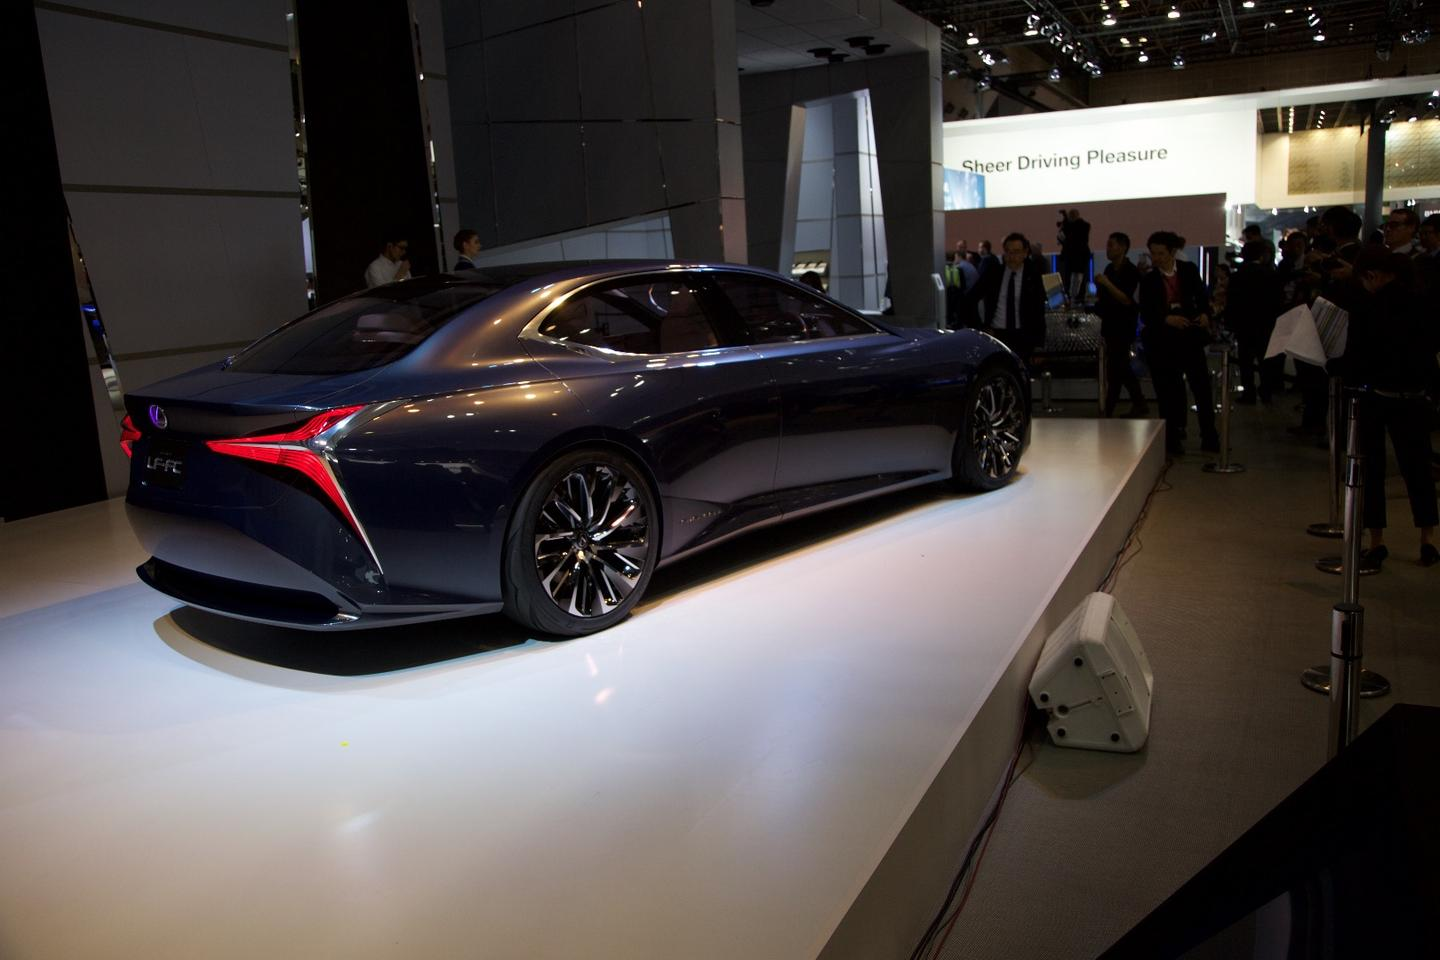 The LF-FC is borne out of Lexus' L-finesse design philosophy